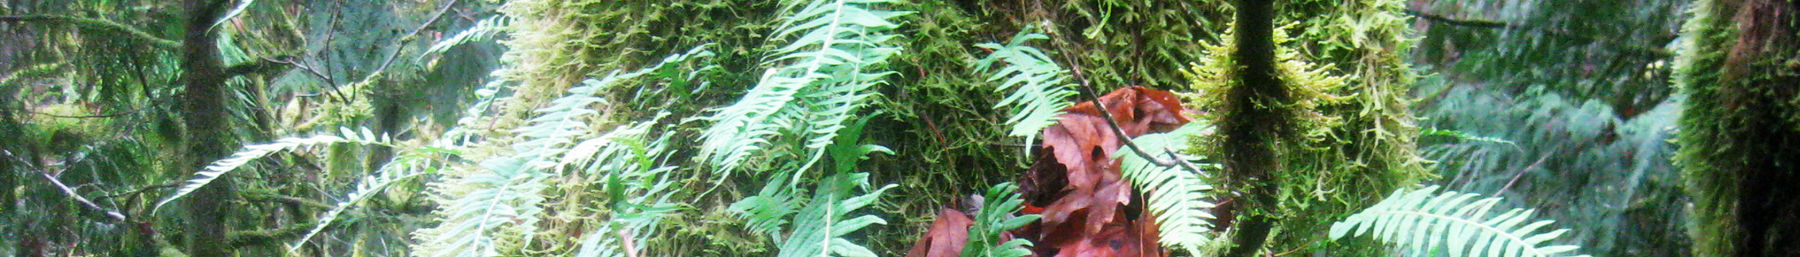 mossy Pacific Northwest tree with ferns